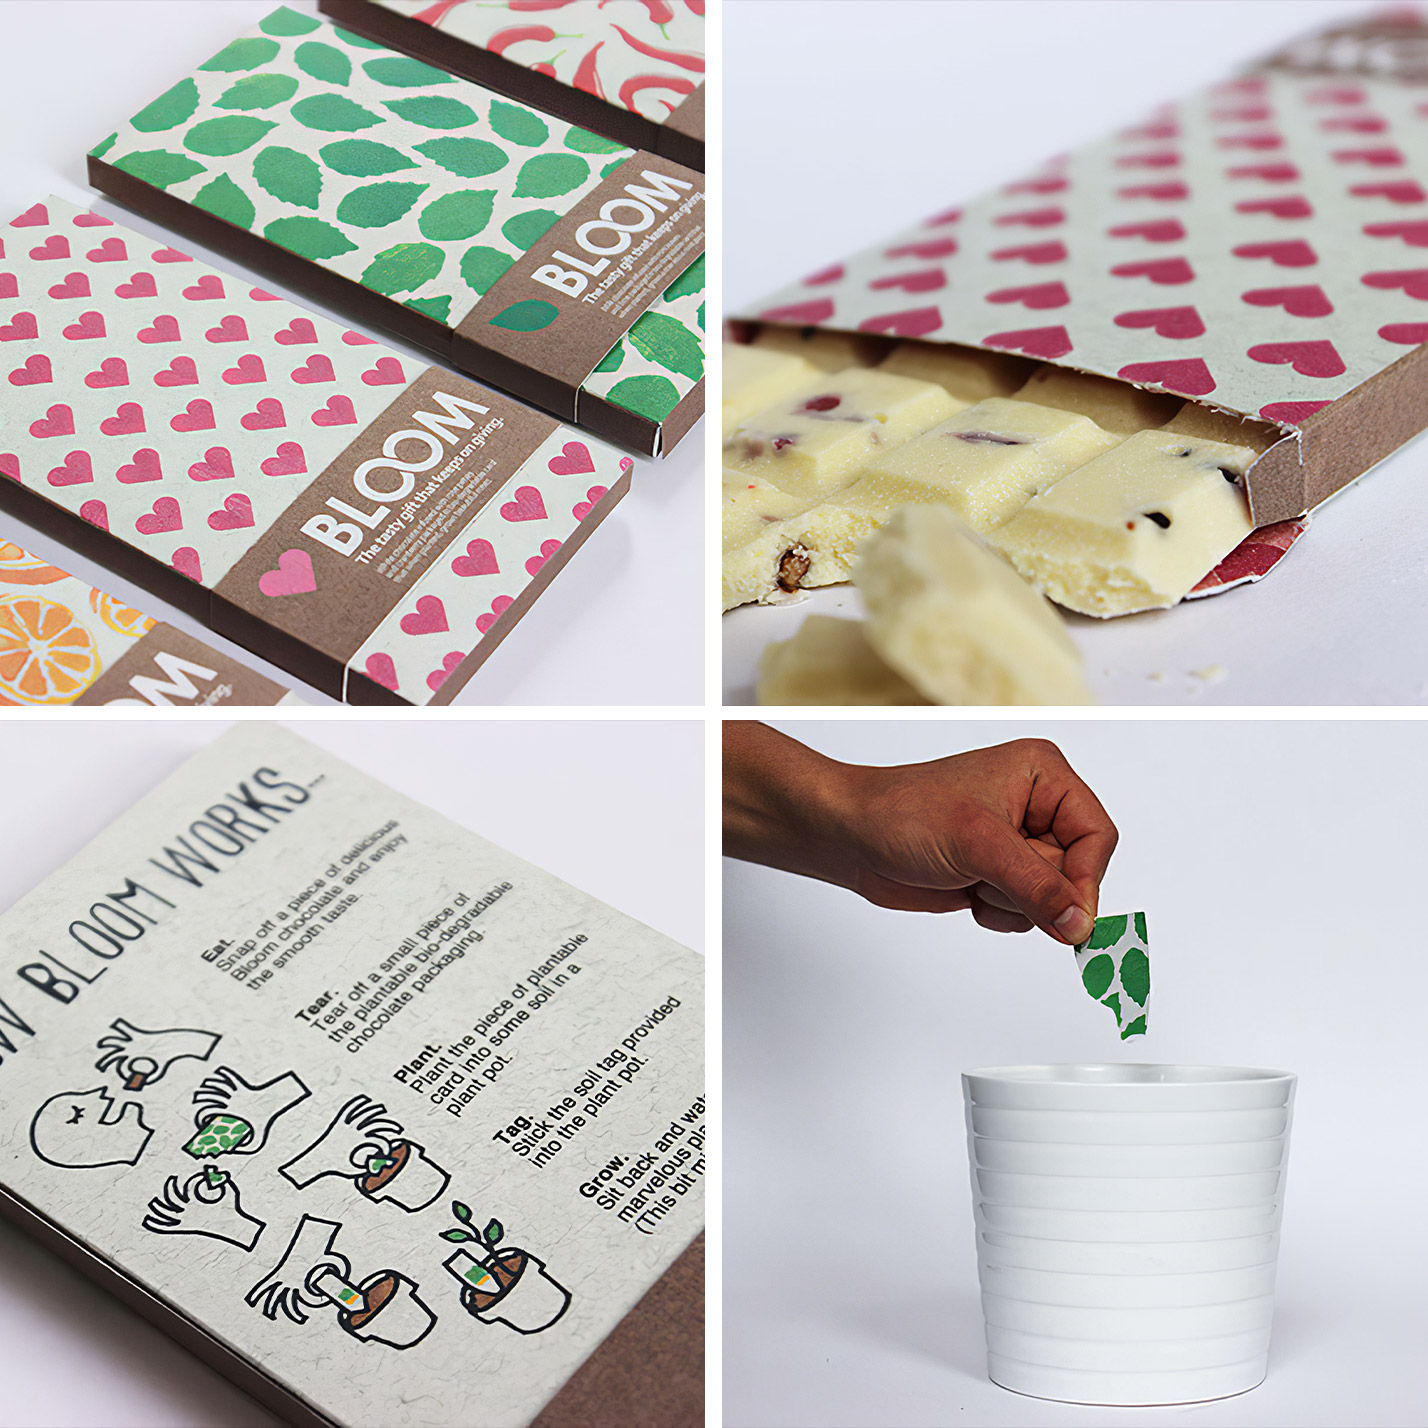 7 x inspiring and sustainable packaging ideas for takeaway and delivery